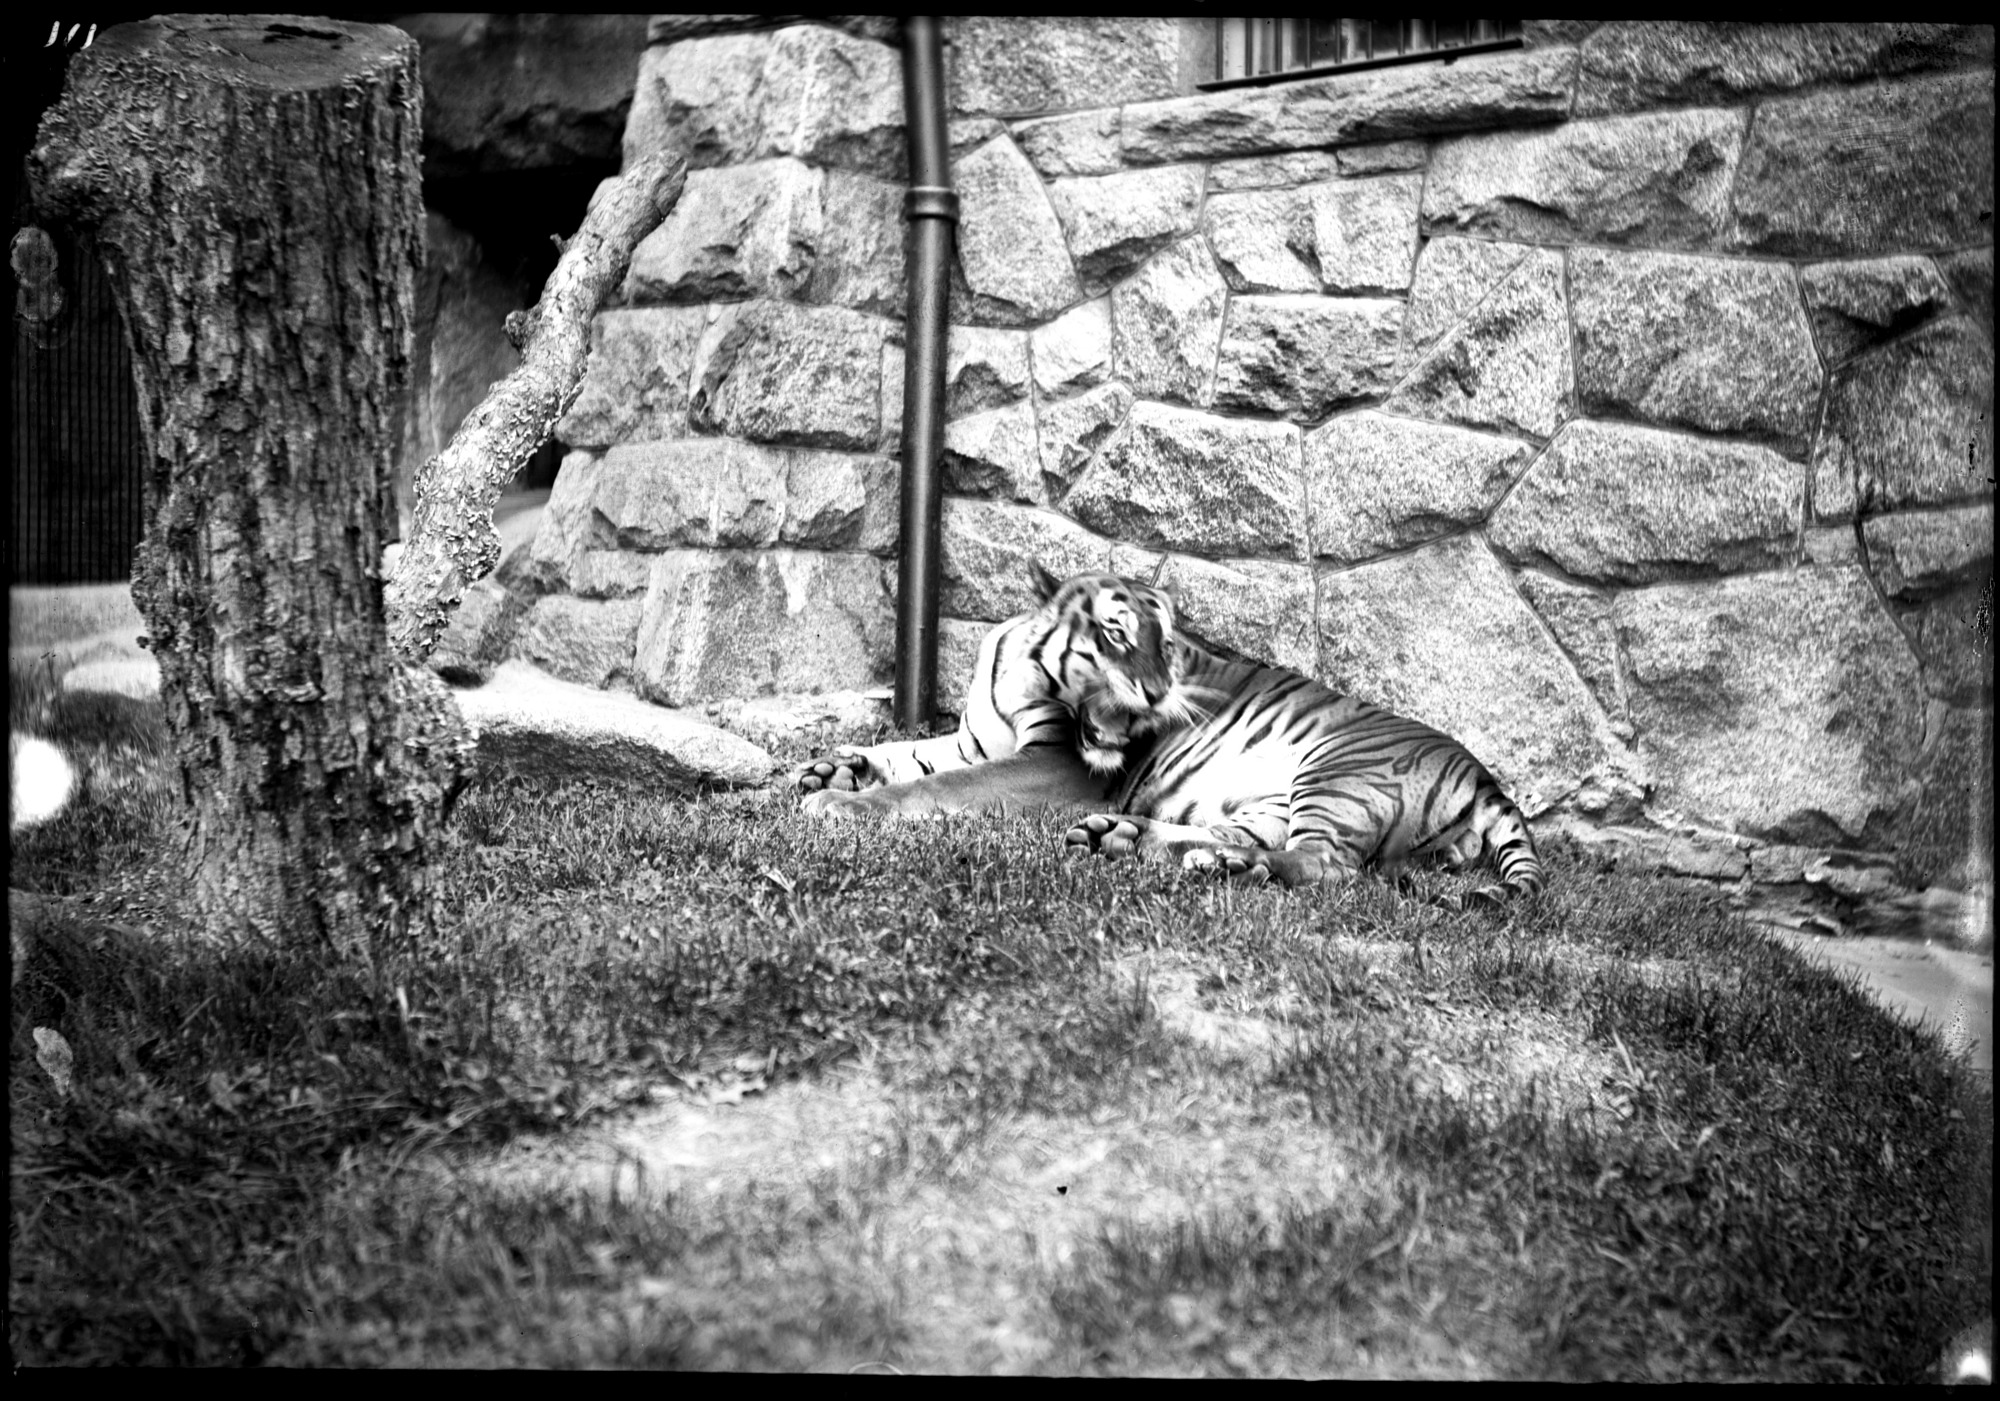 Bengal Tiger, Male, 1896, Smithsonian Institution Archives, SIA Acc. 14-167 [NZP-0111].